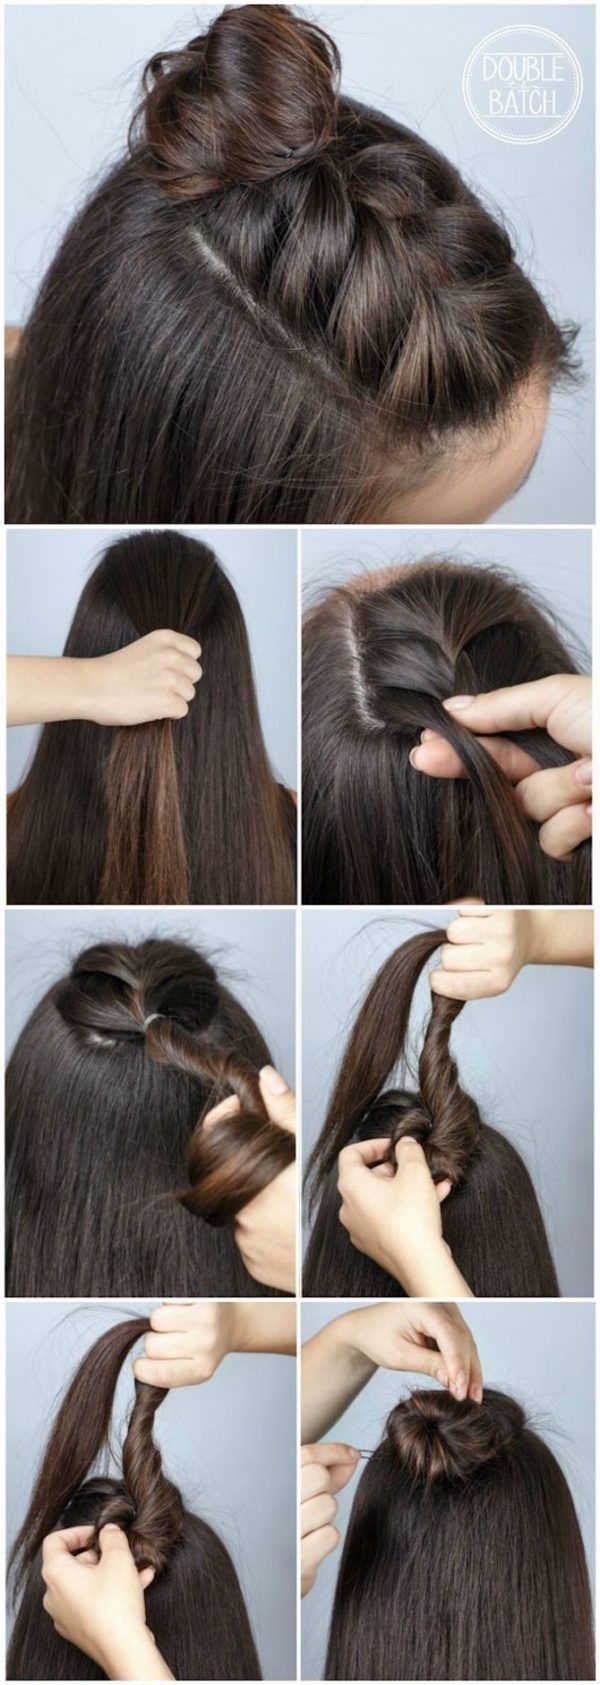 Easy Hairstyles 2019 Step By Step ,  #Easy #Hairstyles #step